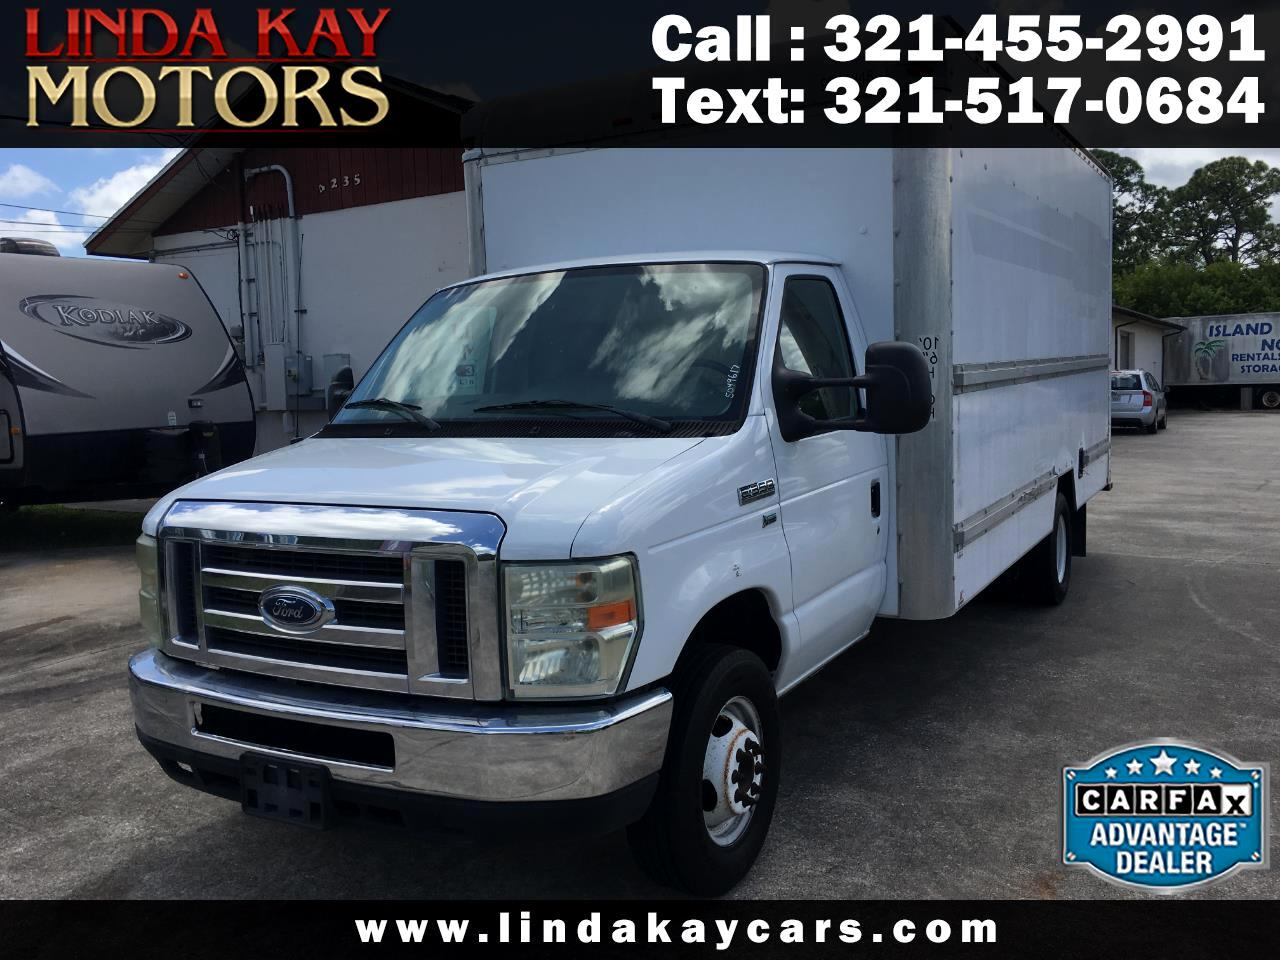 2009 Ford Econoline Commercial Cutaway E-350 Super Duty 138